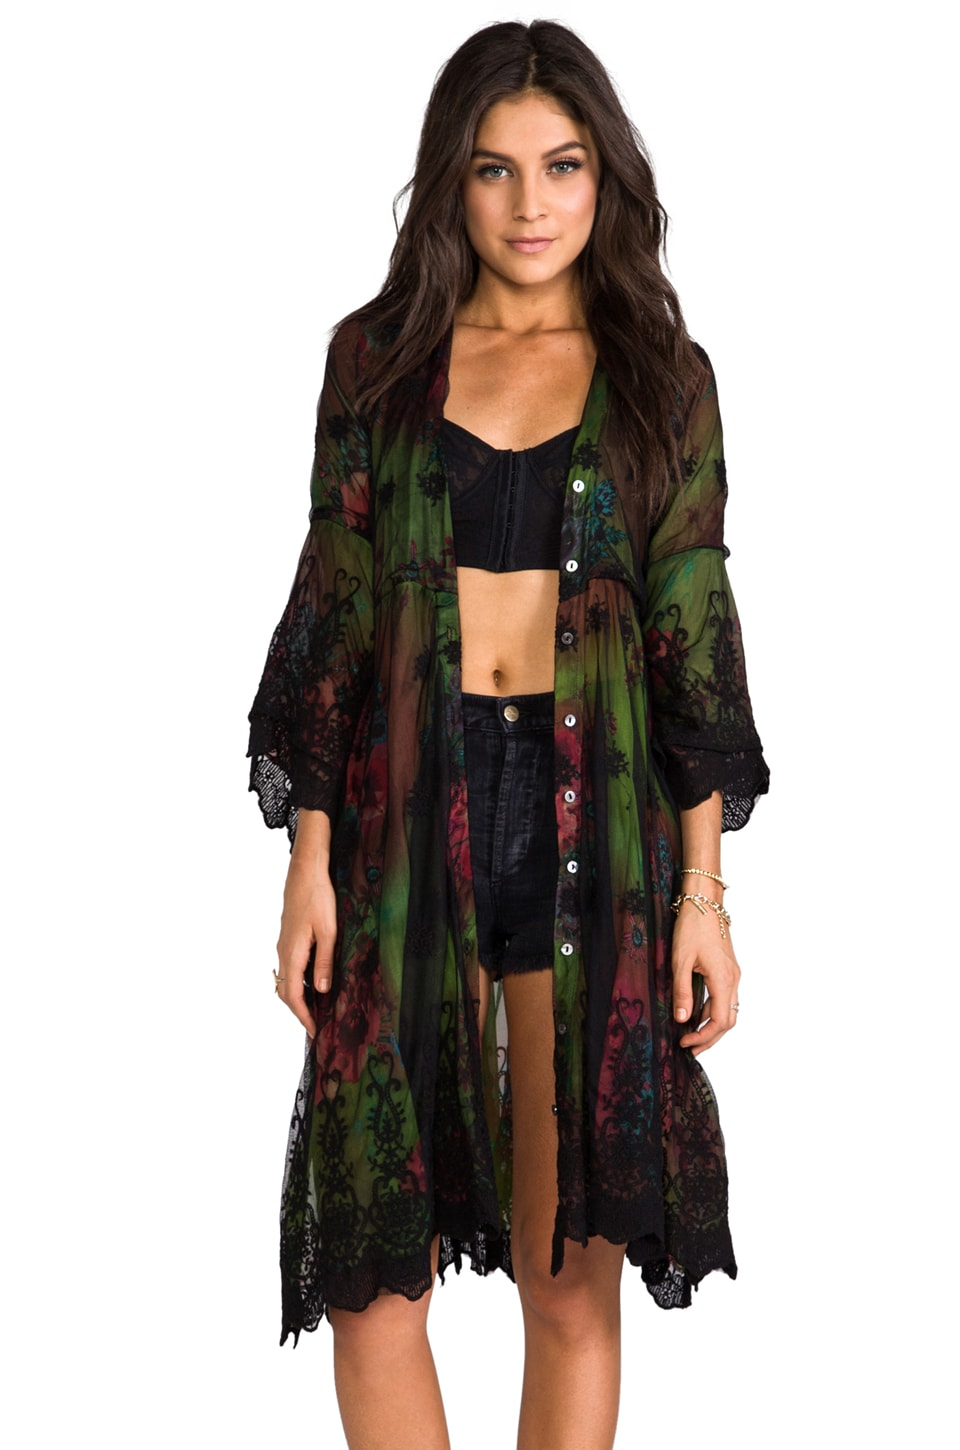 Gypsy Junkies Sissy Long Cardigan in Neon Bloom